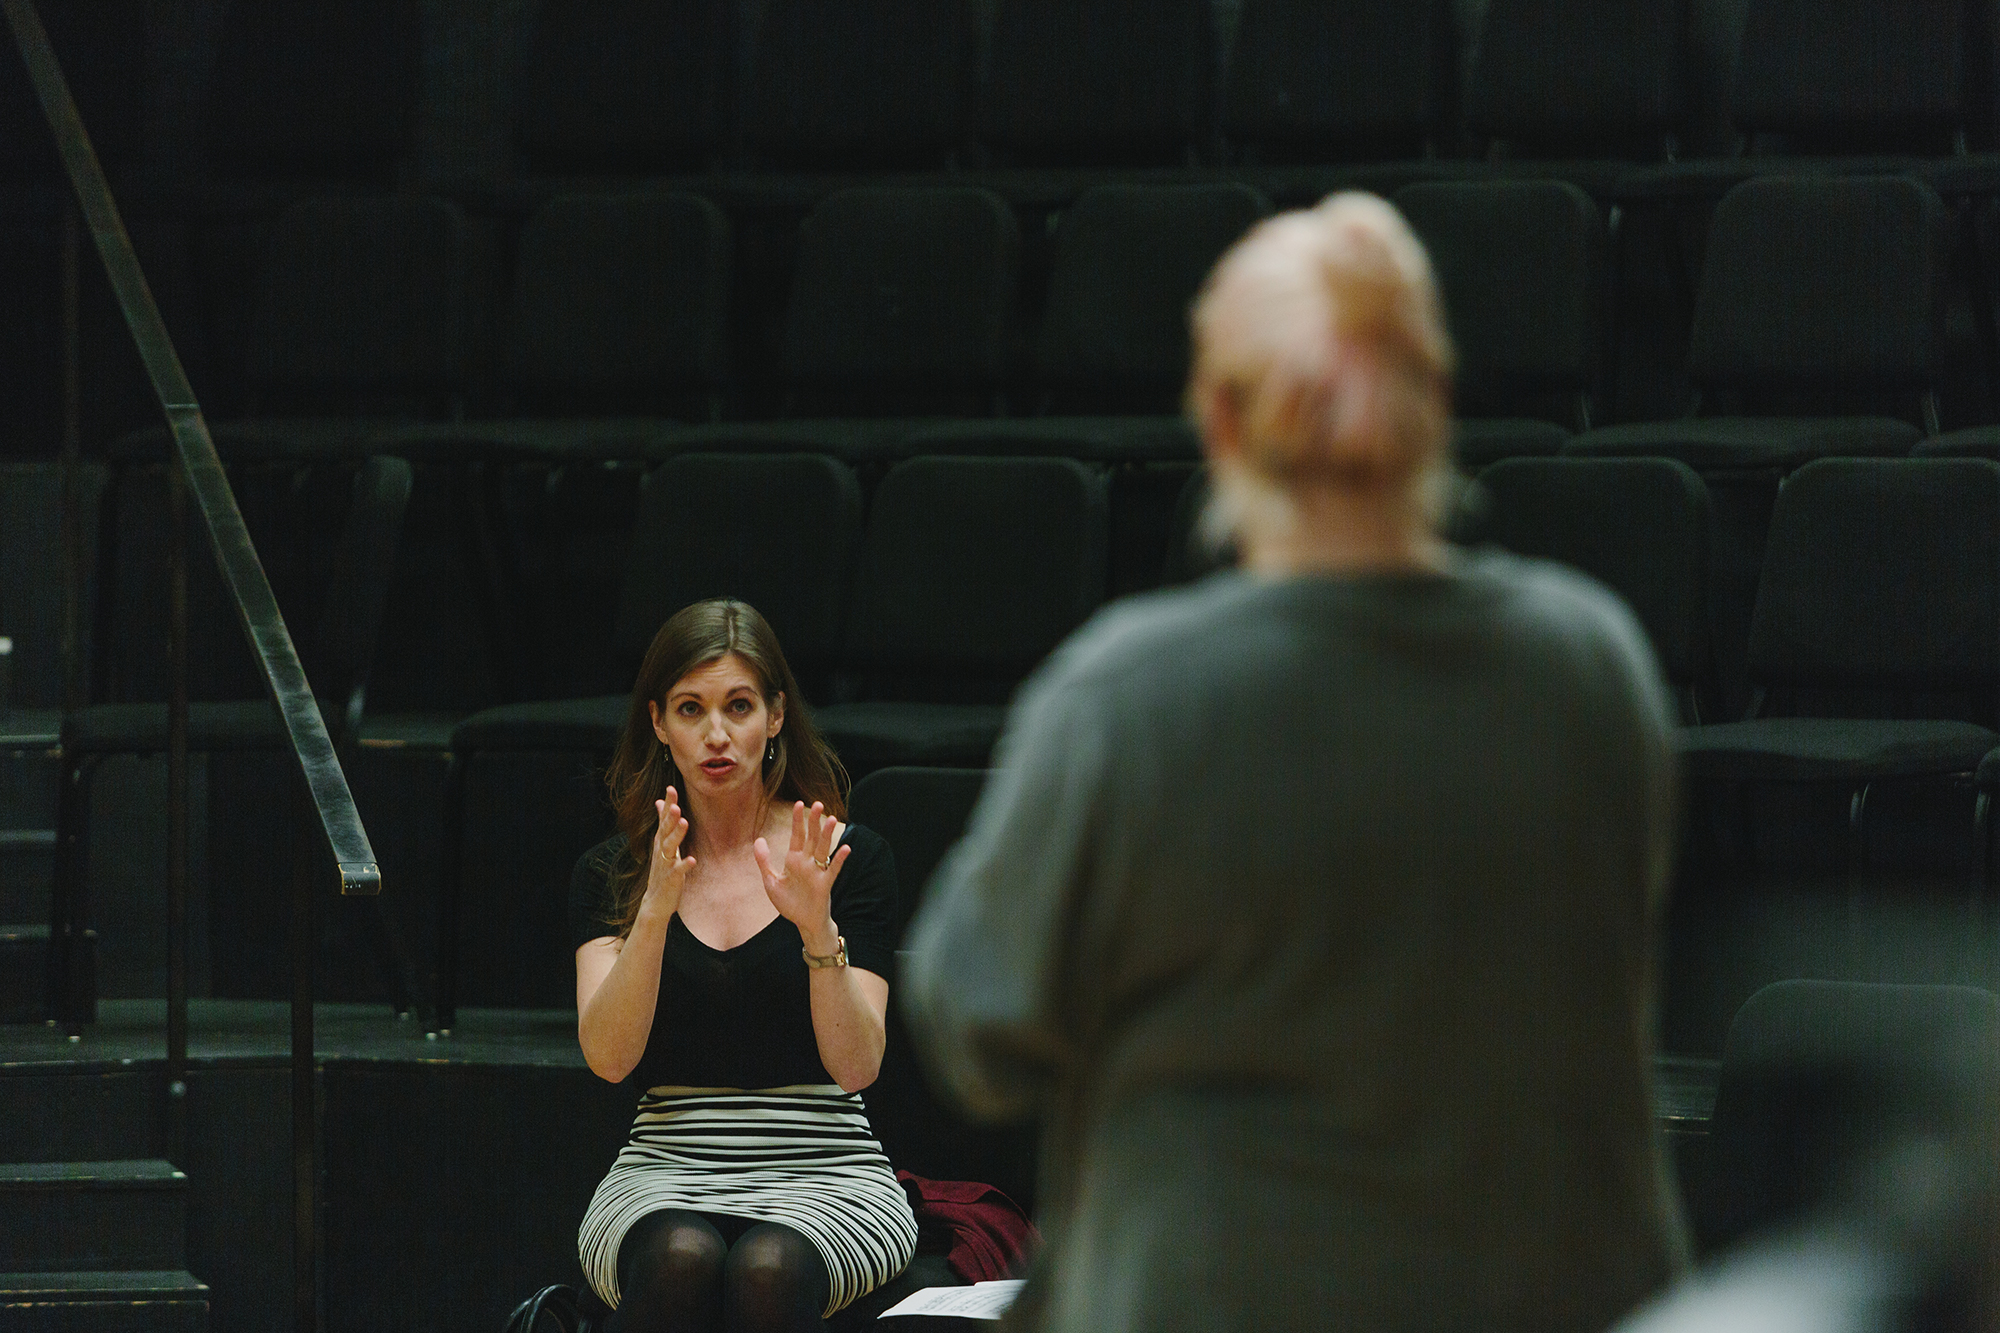 A teacher in the background sits in an empty auditorium row, speaking to a student standing on stage in the foreground.